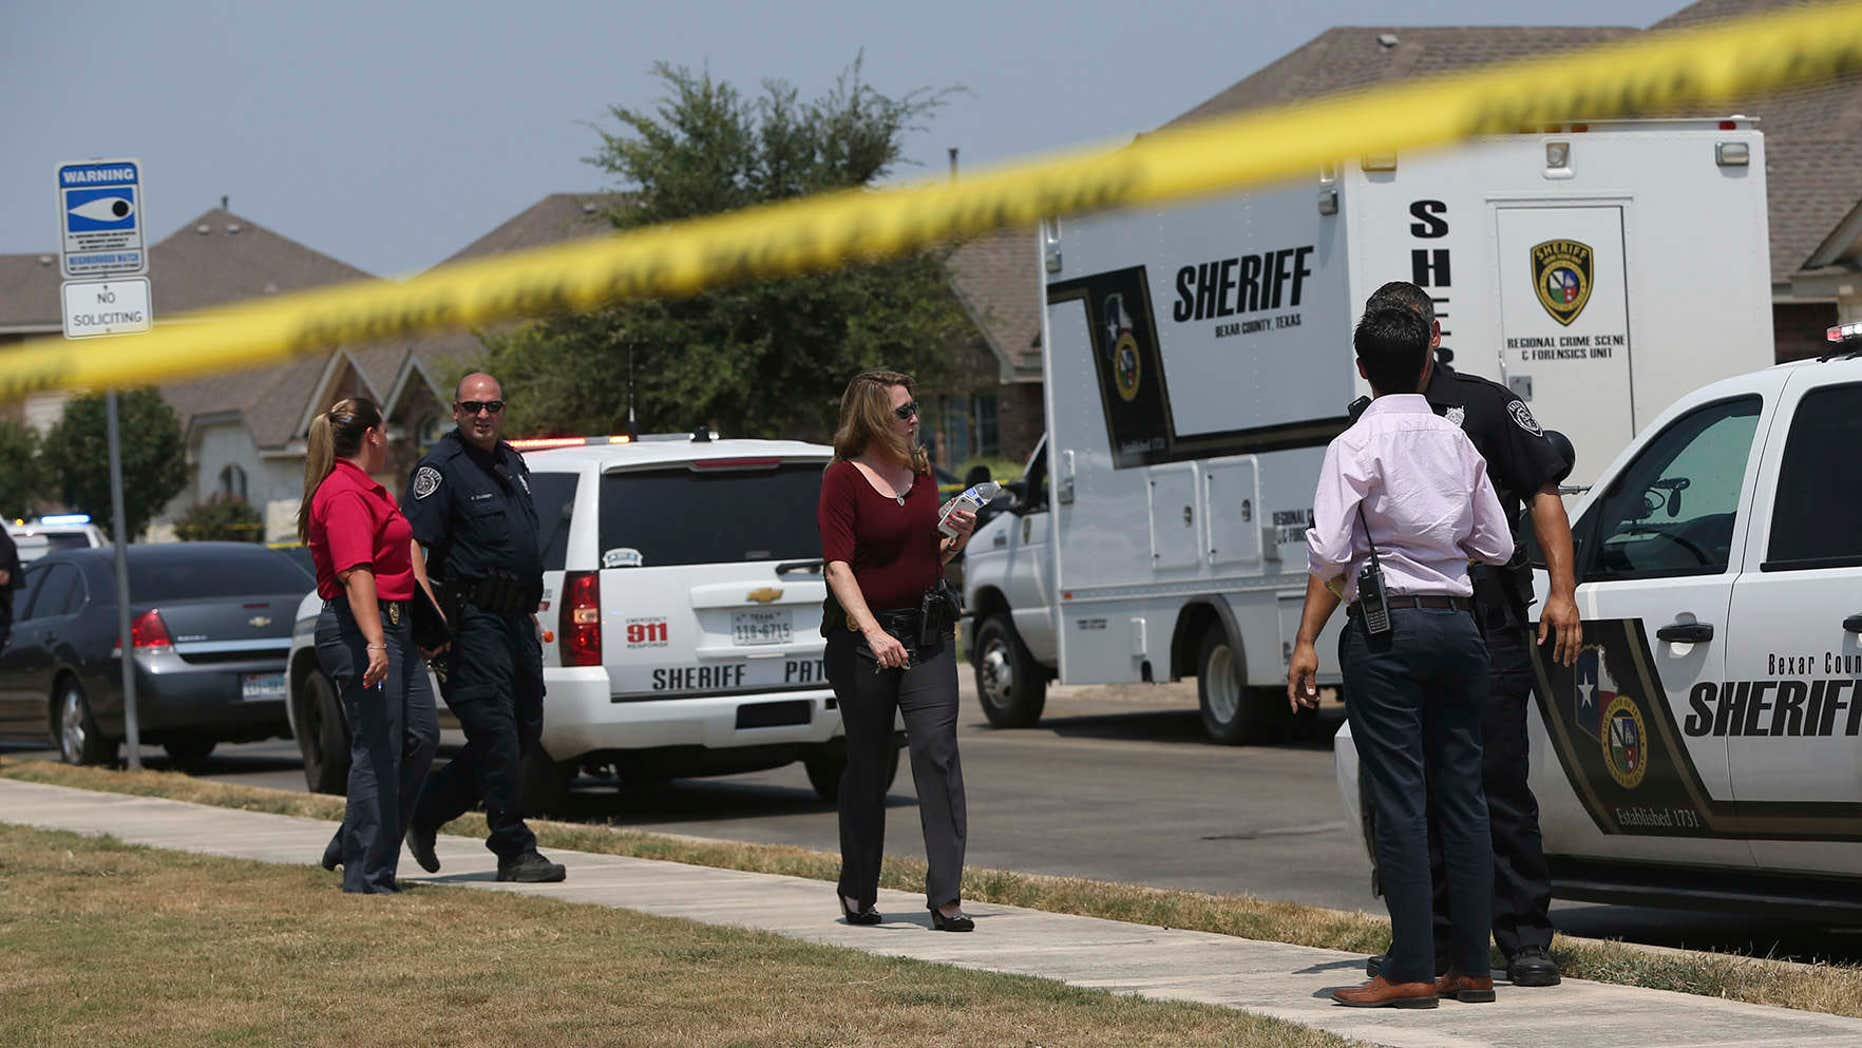 Aug. 28, 2015: The Bexar County Sheriff's Department investigates the scene where deputies shot a man as they responded to a domestic disturbance call in Northwest Bexar County, Texas, near San Antonio.